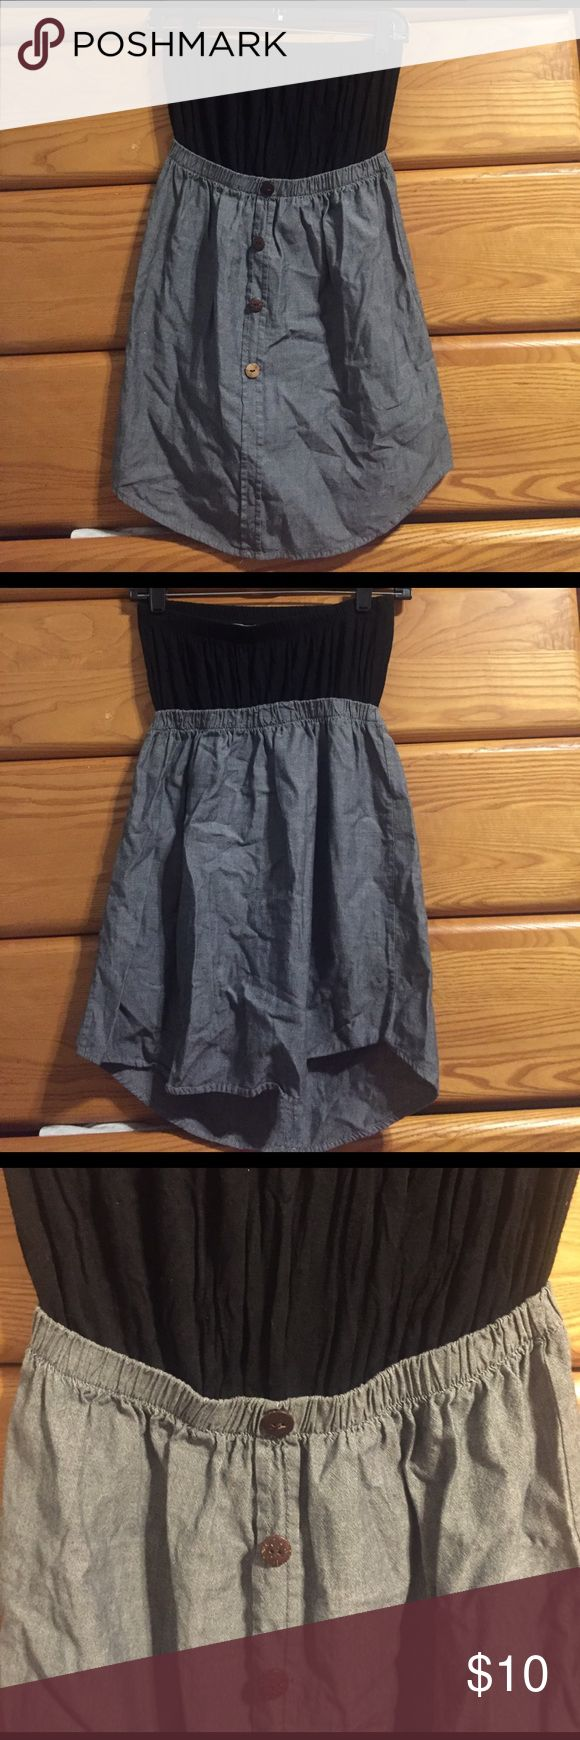 Strapless black and denim dress Super cute strapless dress with black cotton top, elastic waistband, and button down denim body Dresses Strapless